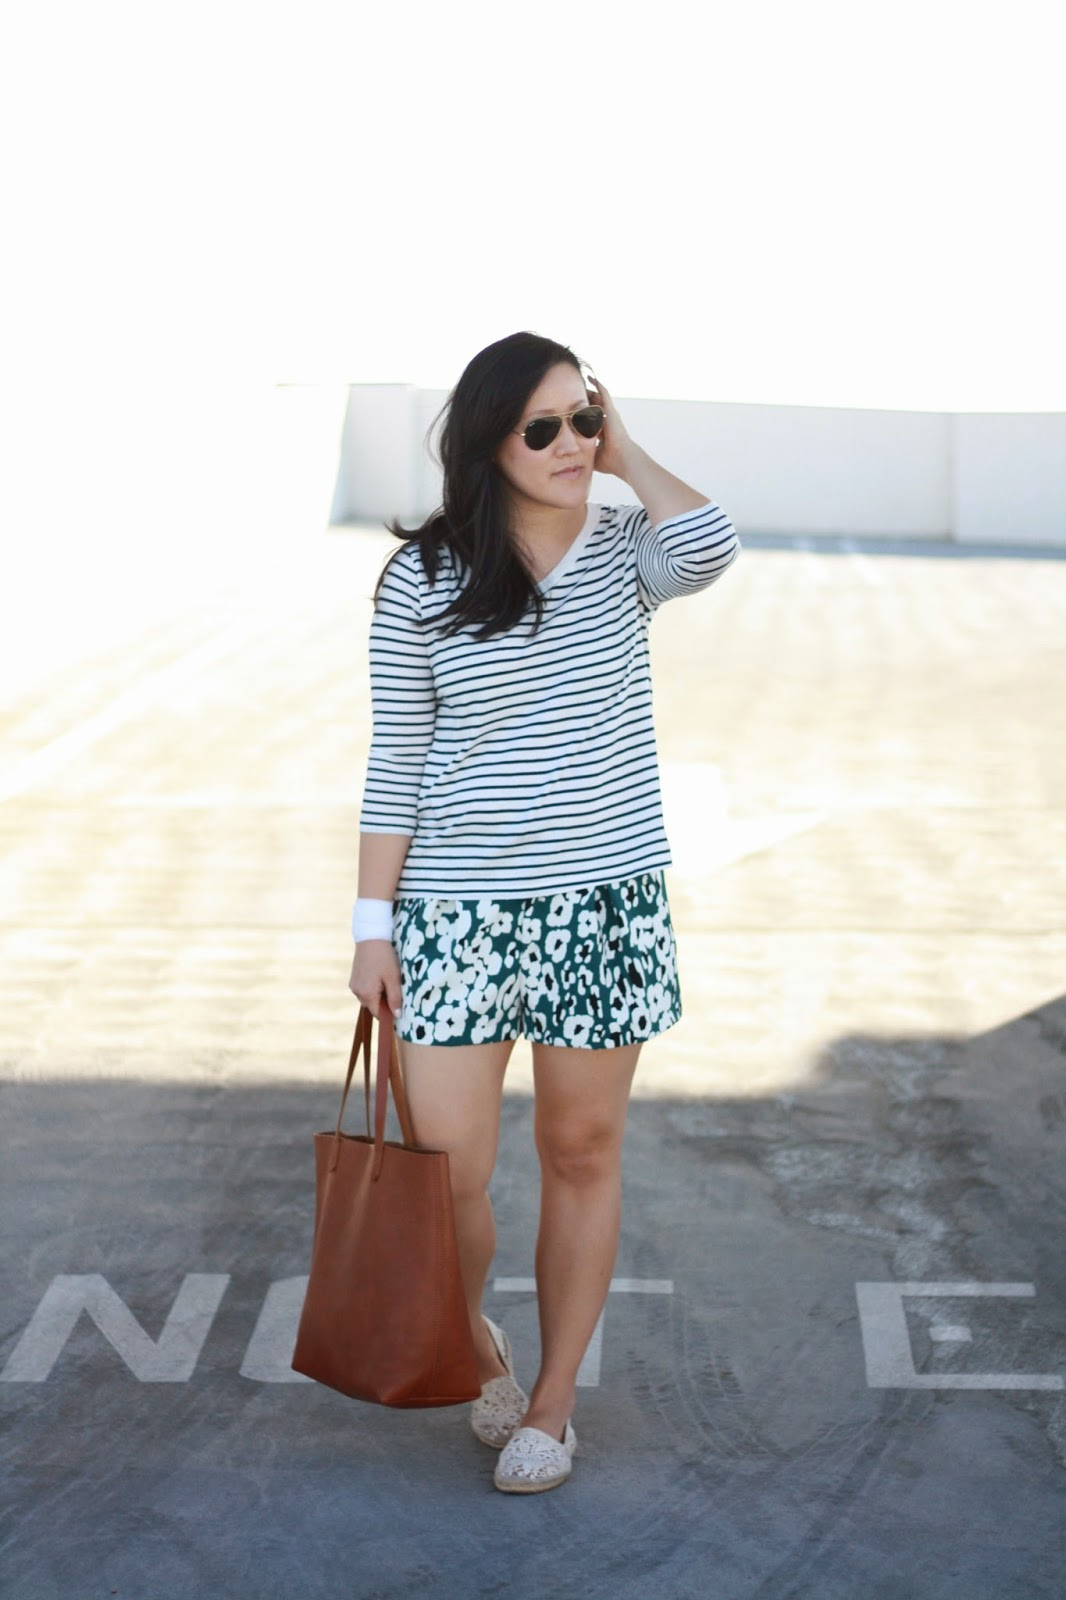 simplyxclassic, zara, stripes and floras, rayban, madewell, made well, socal, southern california blogger, blogger, orange county,